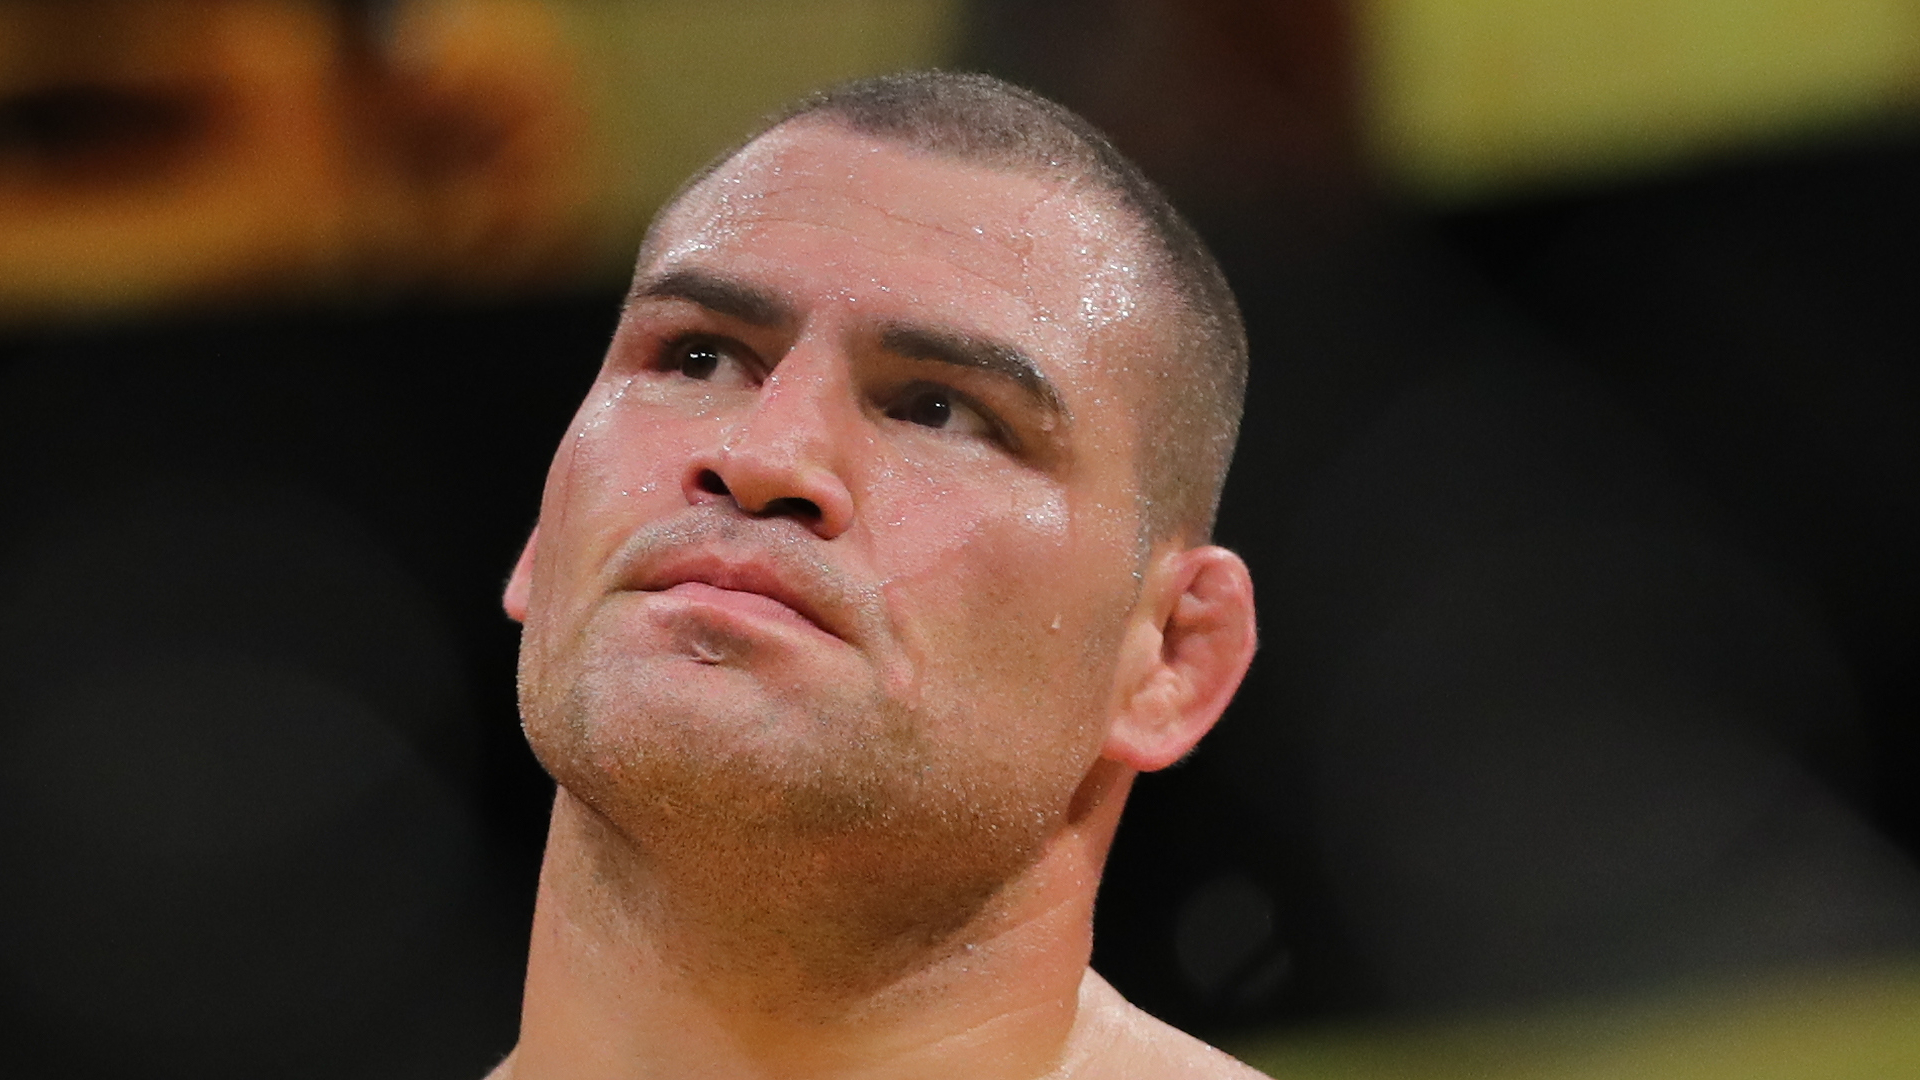 SN Q&A: Cain Velasquez on exceeding expectations in pro wrestling debut, why he continues UFC career